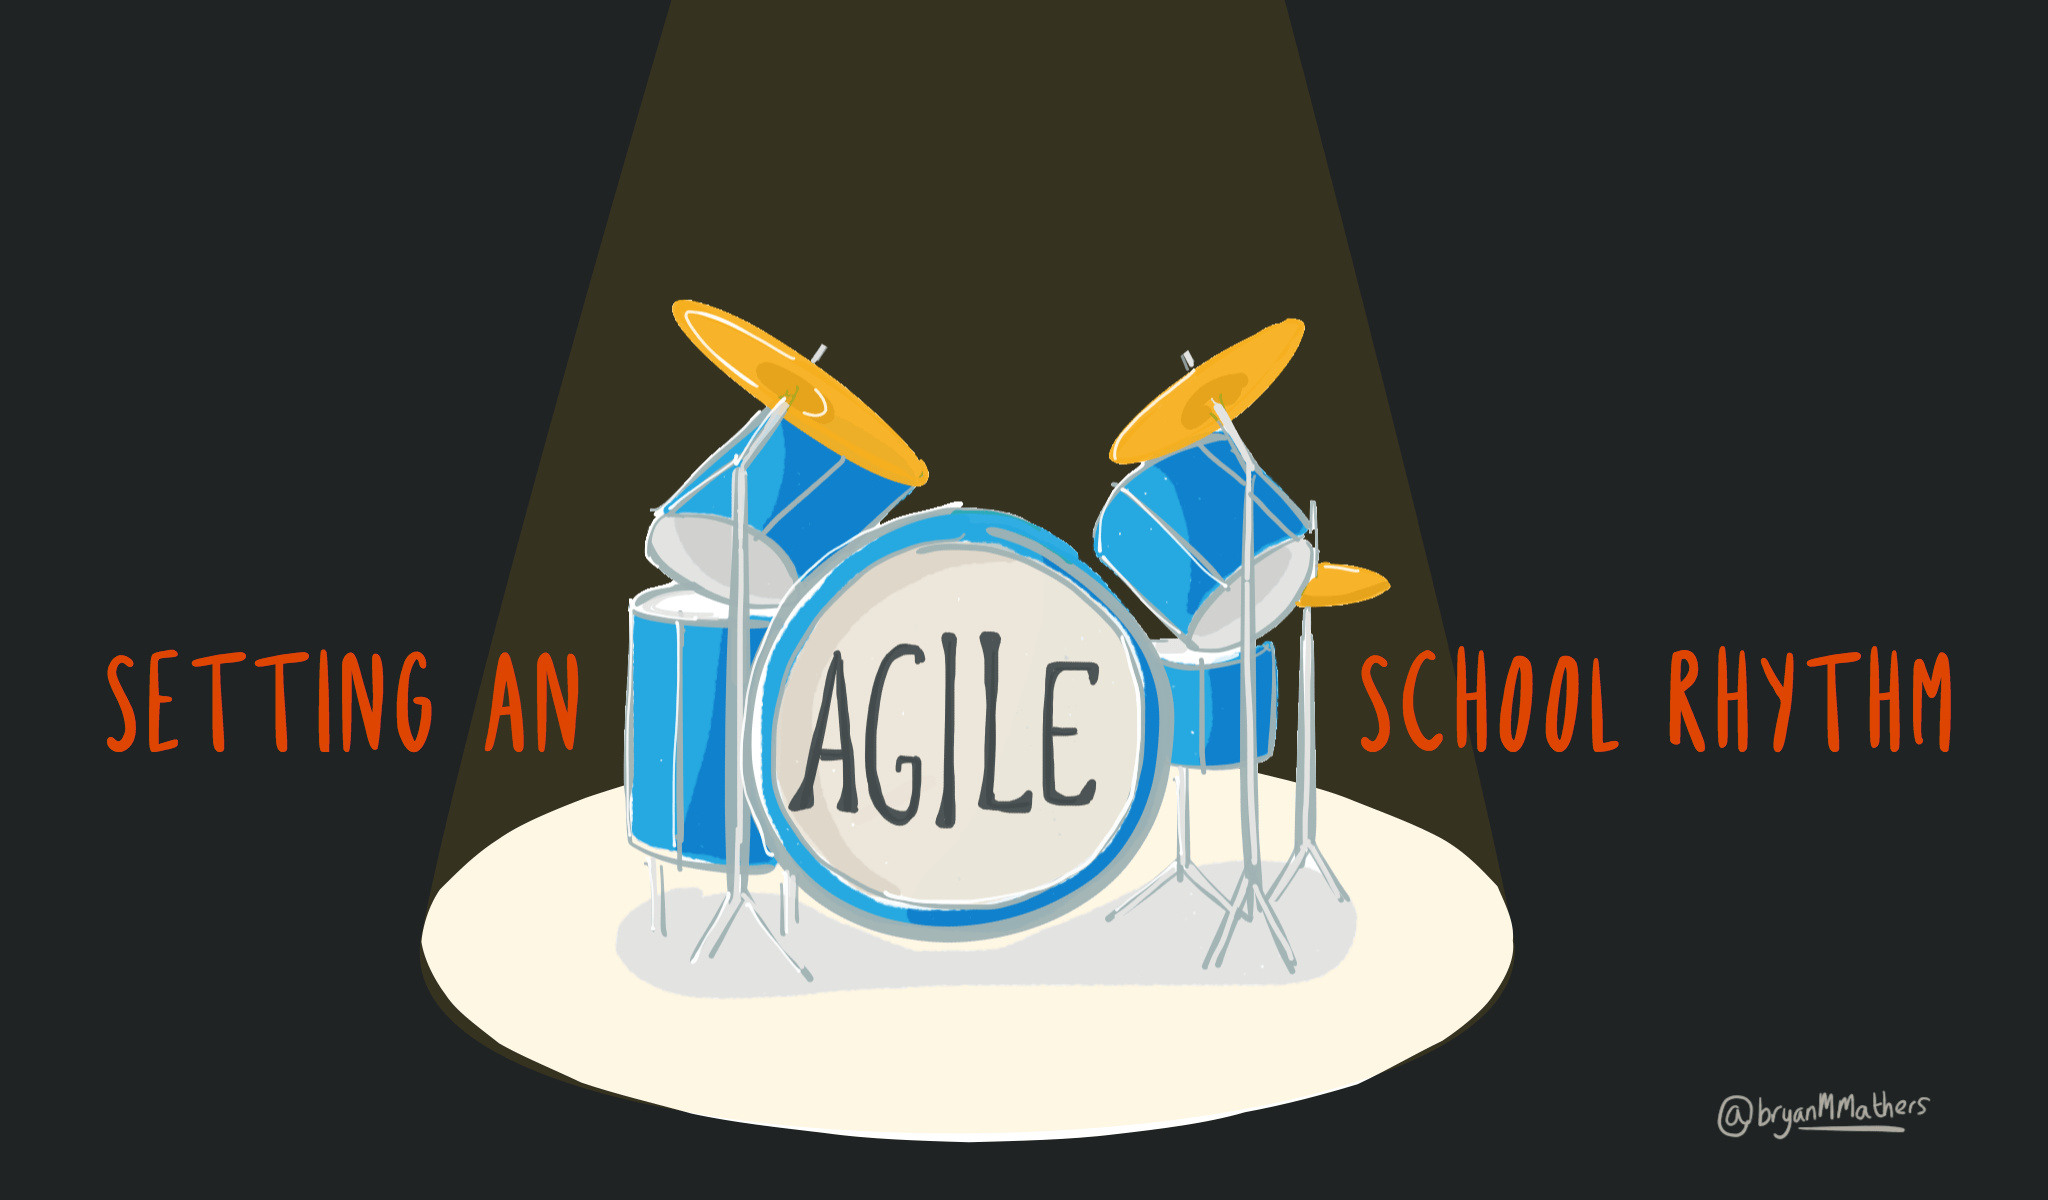 Setting an Agile School Rhythm